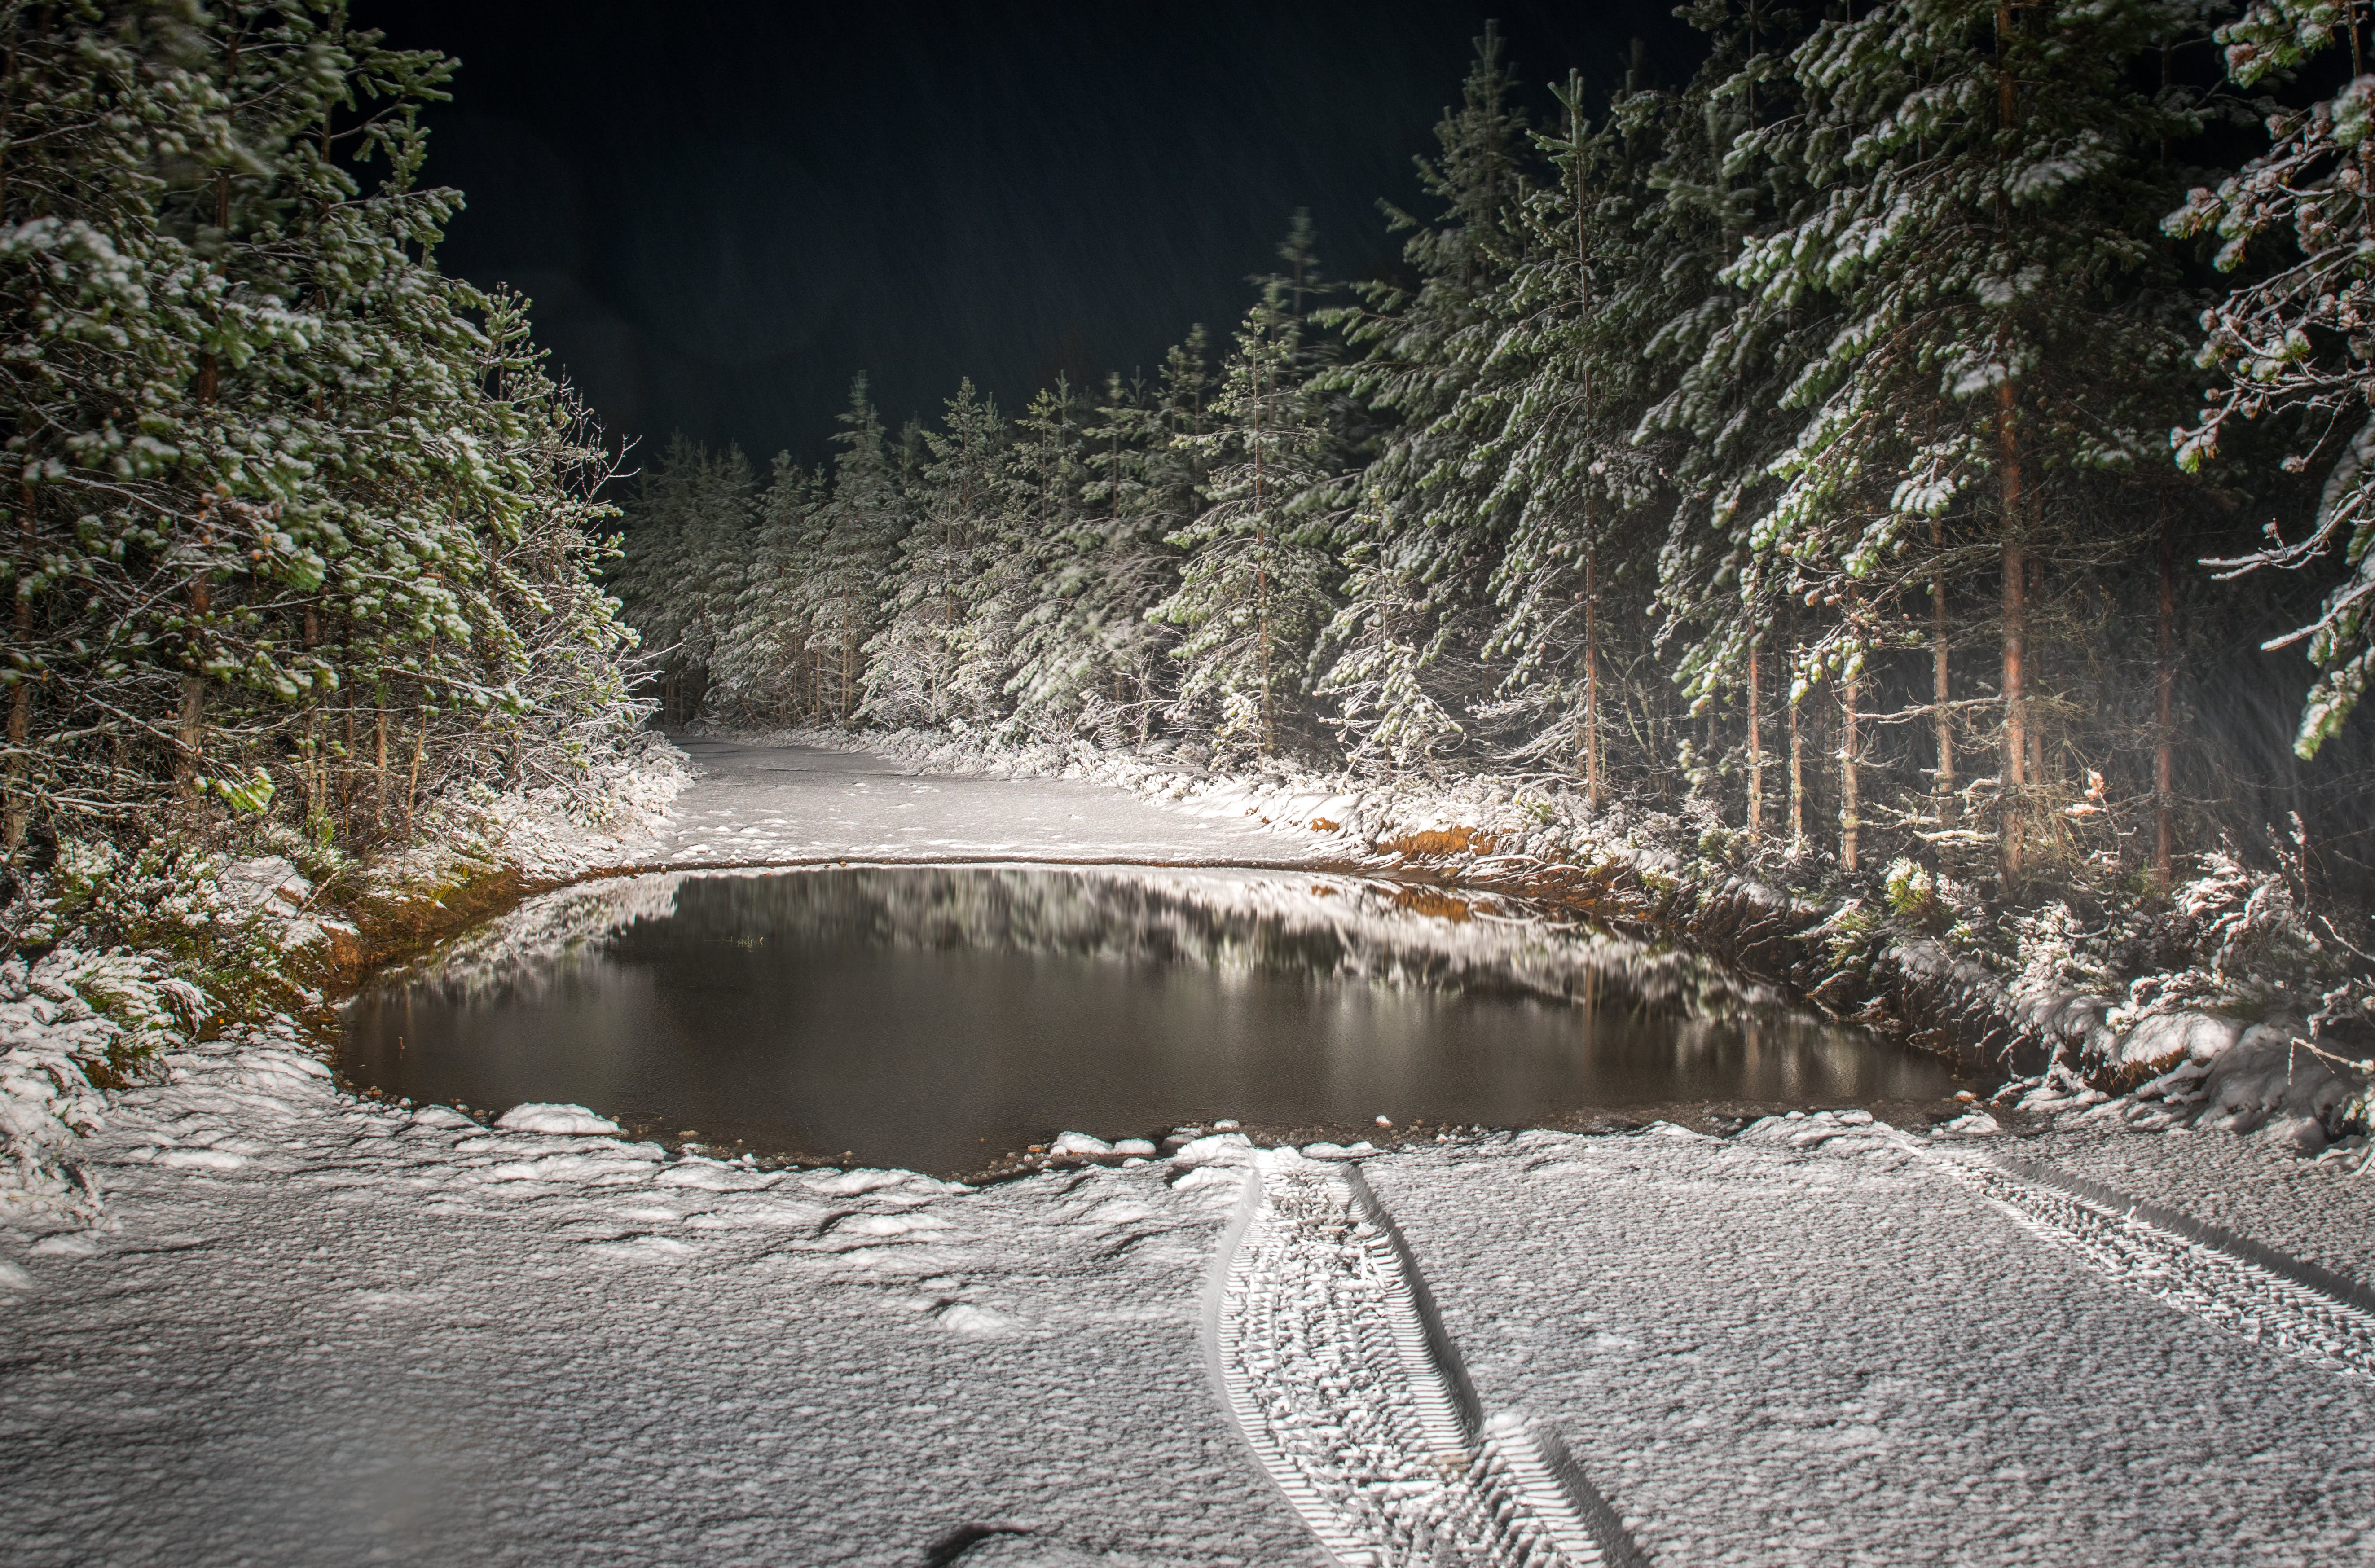 Roadway Filled by Snow Surrounded by Pine Trees Landscape Photography